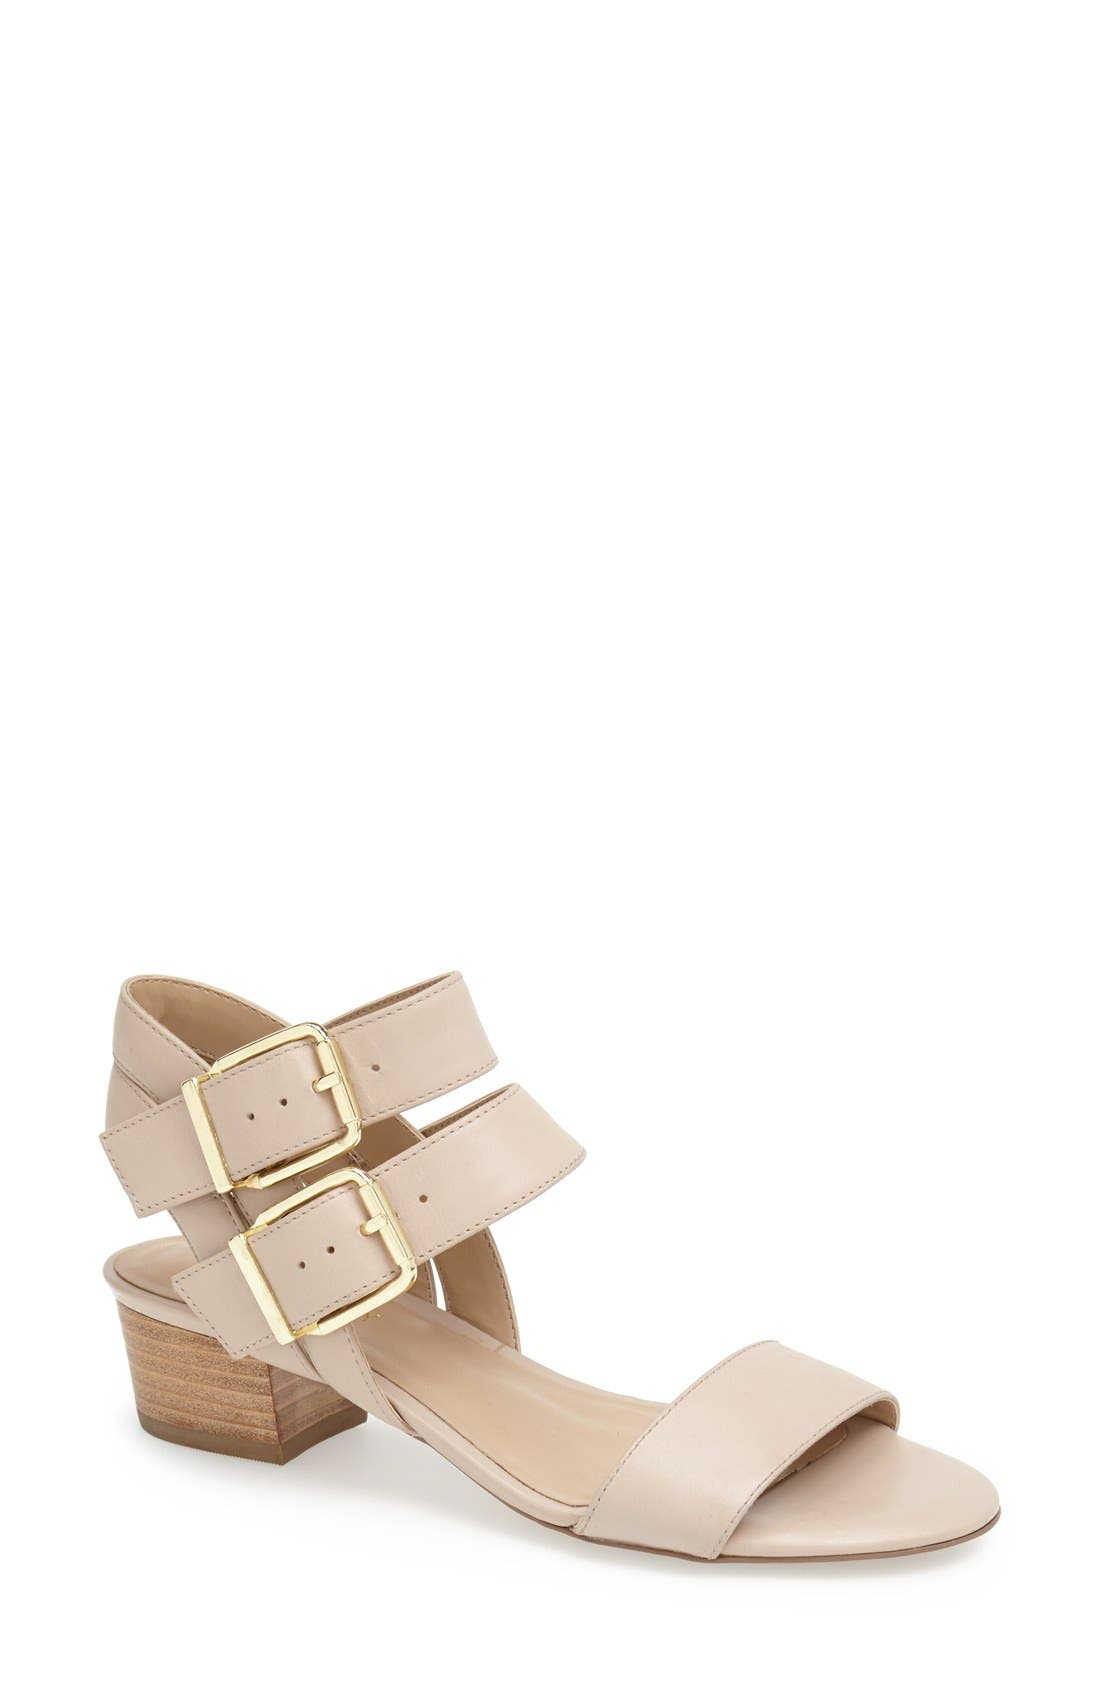 Main Image - Sole Society 'Christine' Sandal (Women)